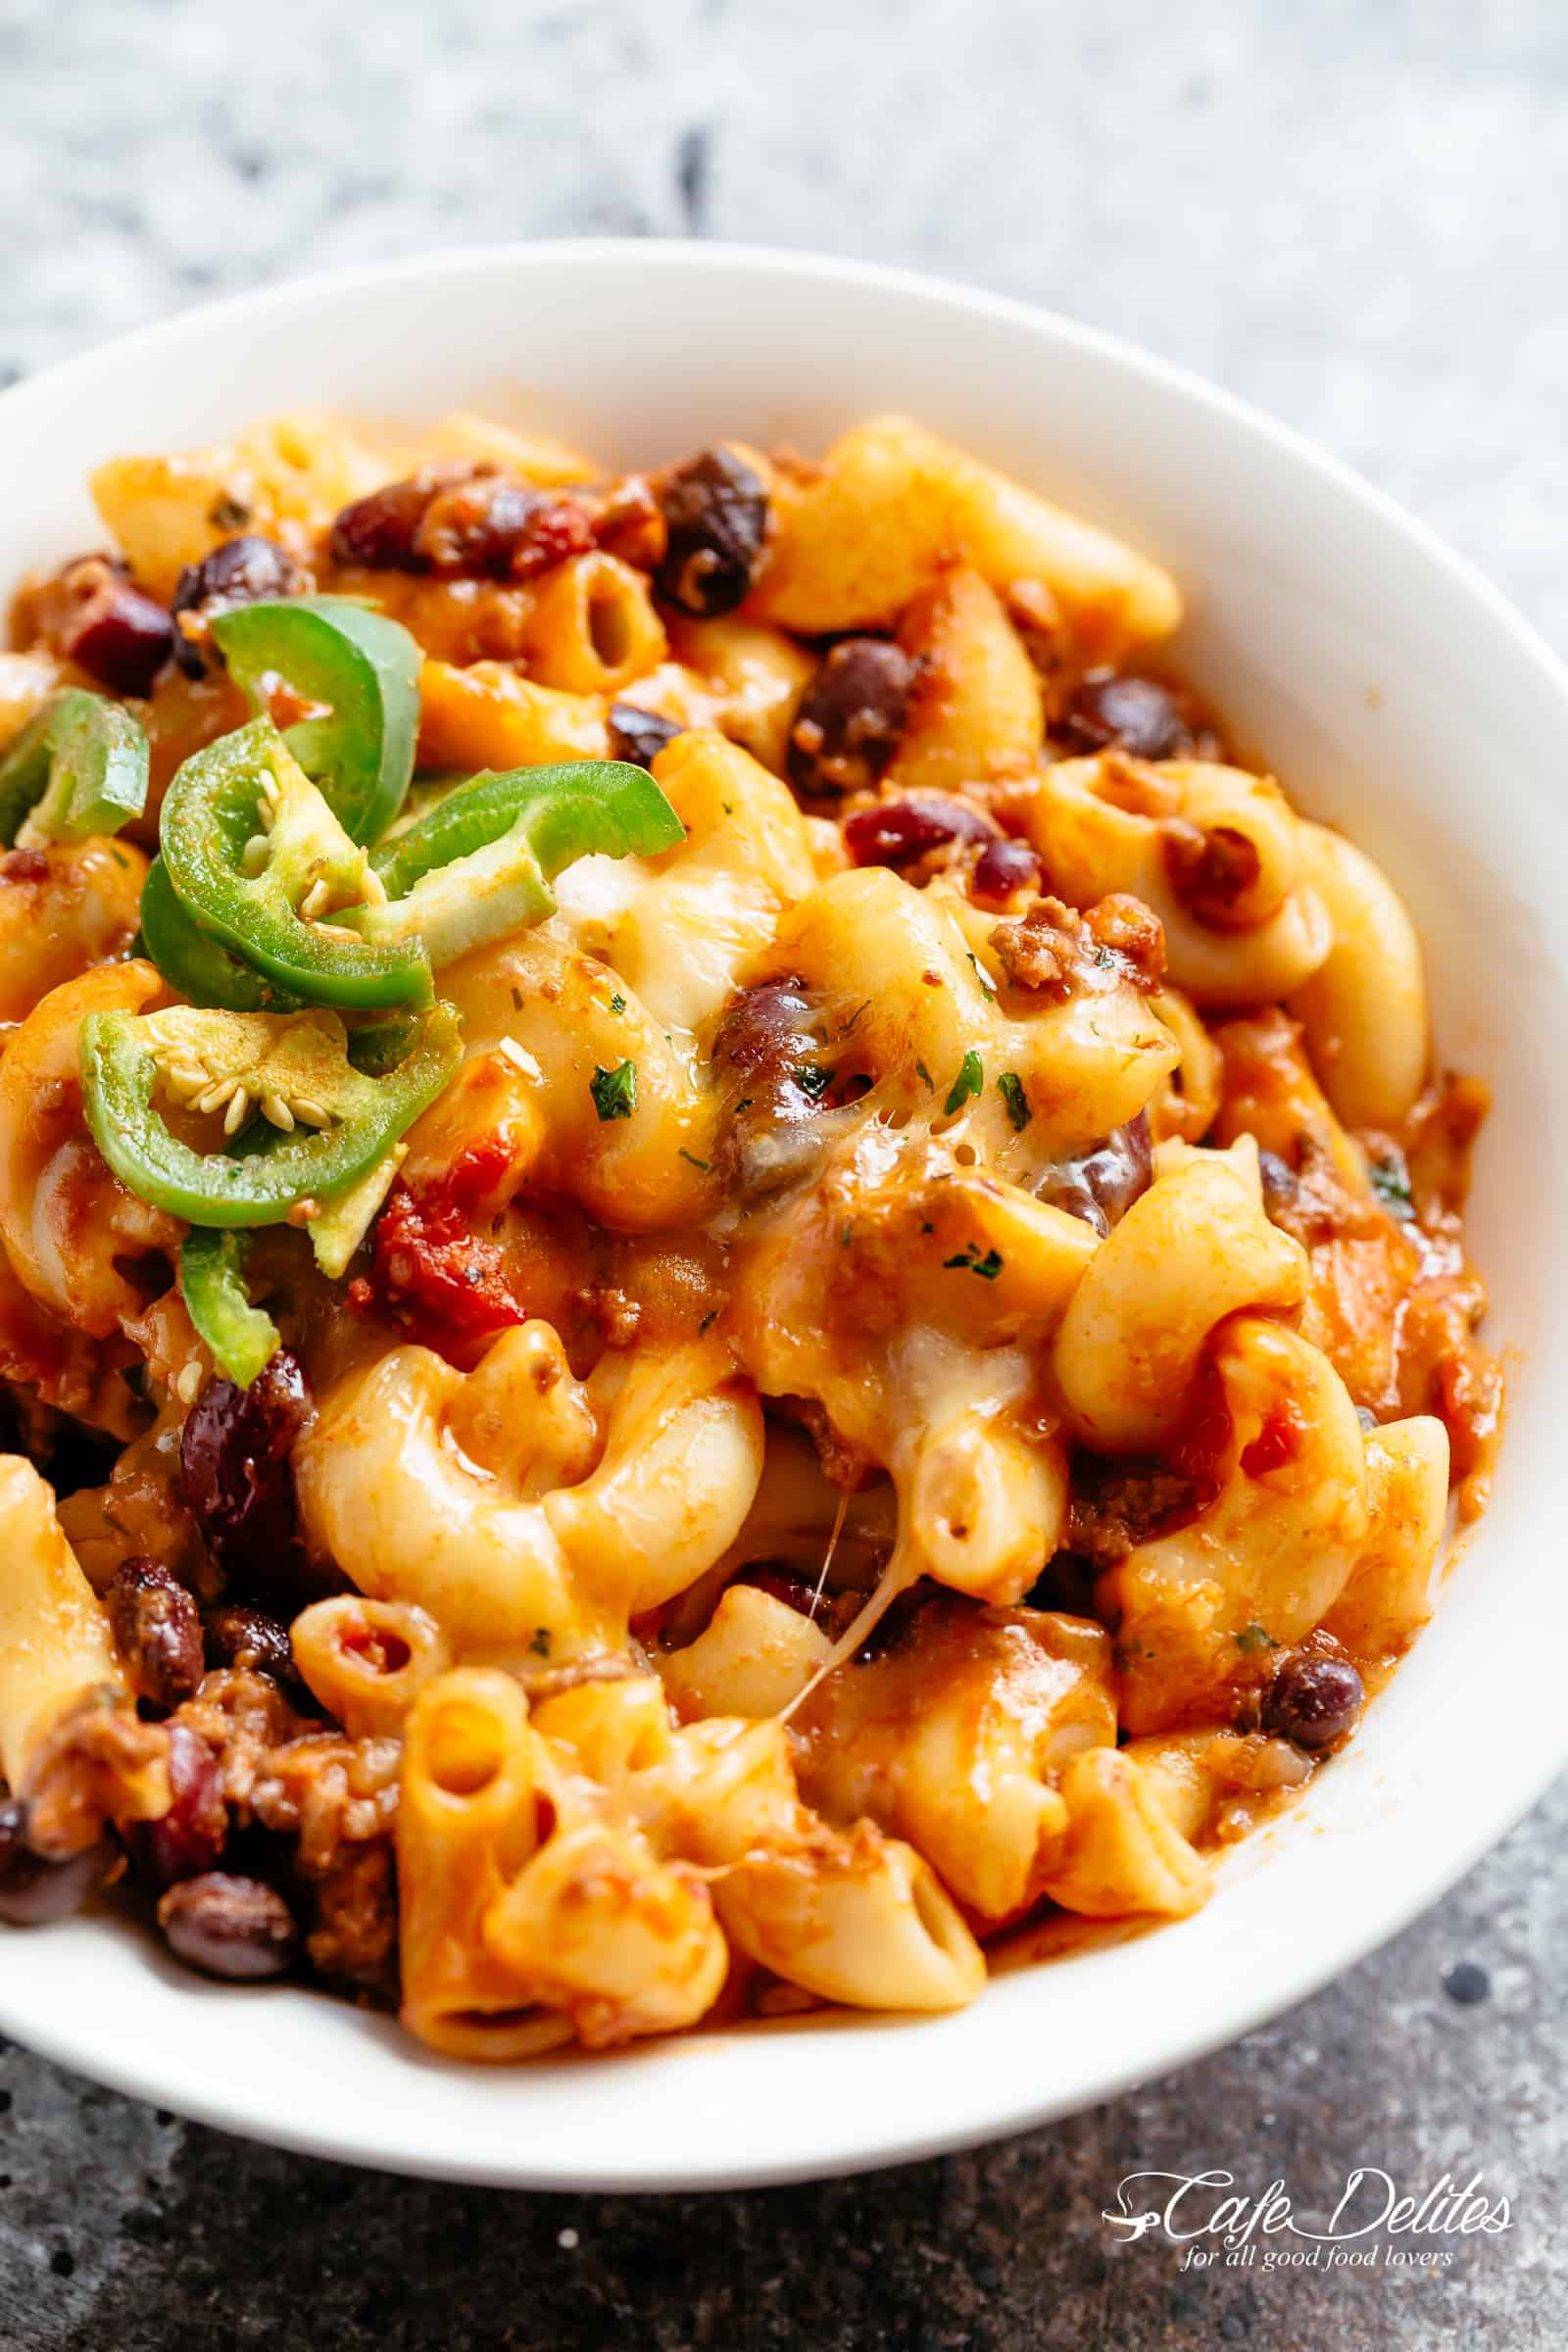 Chili Mac and Cheese with beans is the ultimate mash up of TWO favourites -- Chili PLUS Mac and Cheese! Using leftover chili OR chili made from scratch, this casserole is ready and on the table in less than 30 minutes! Incredible flavours that the whole family will go crazy for! | cafedelites.com